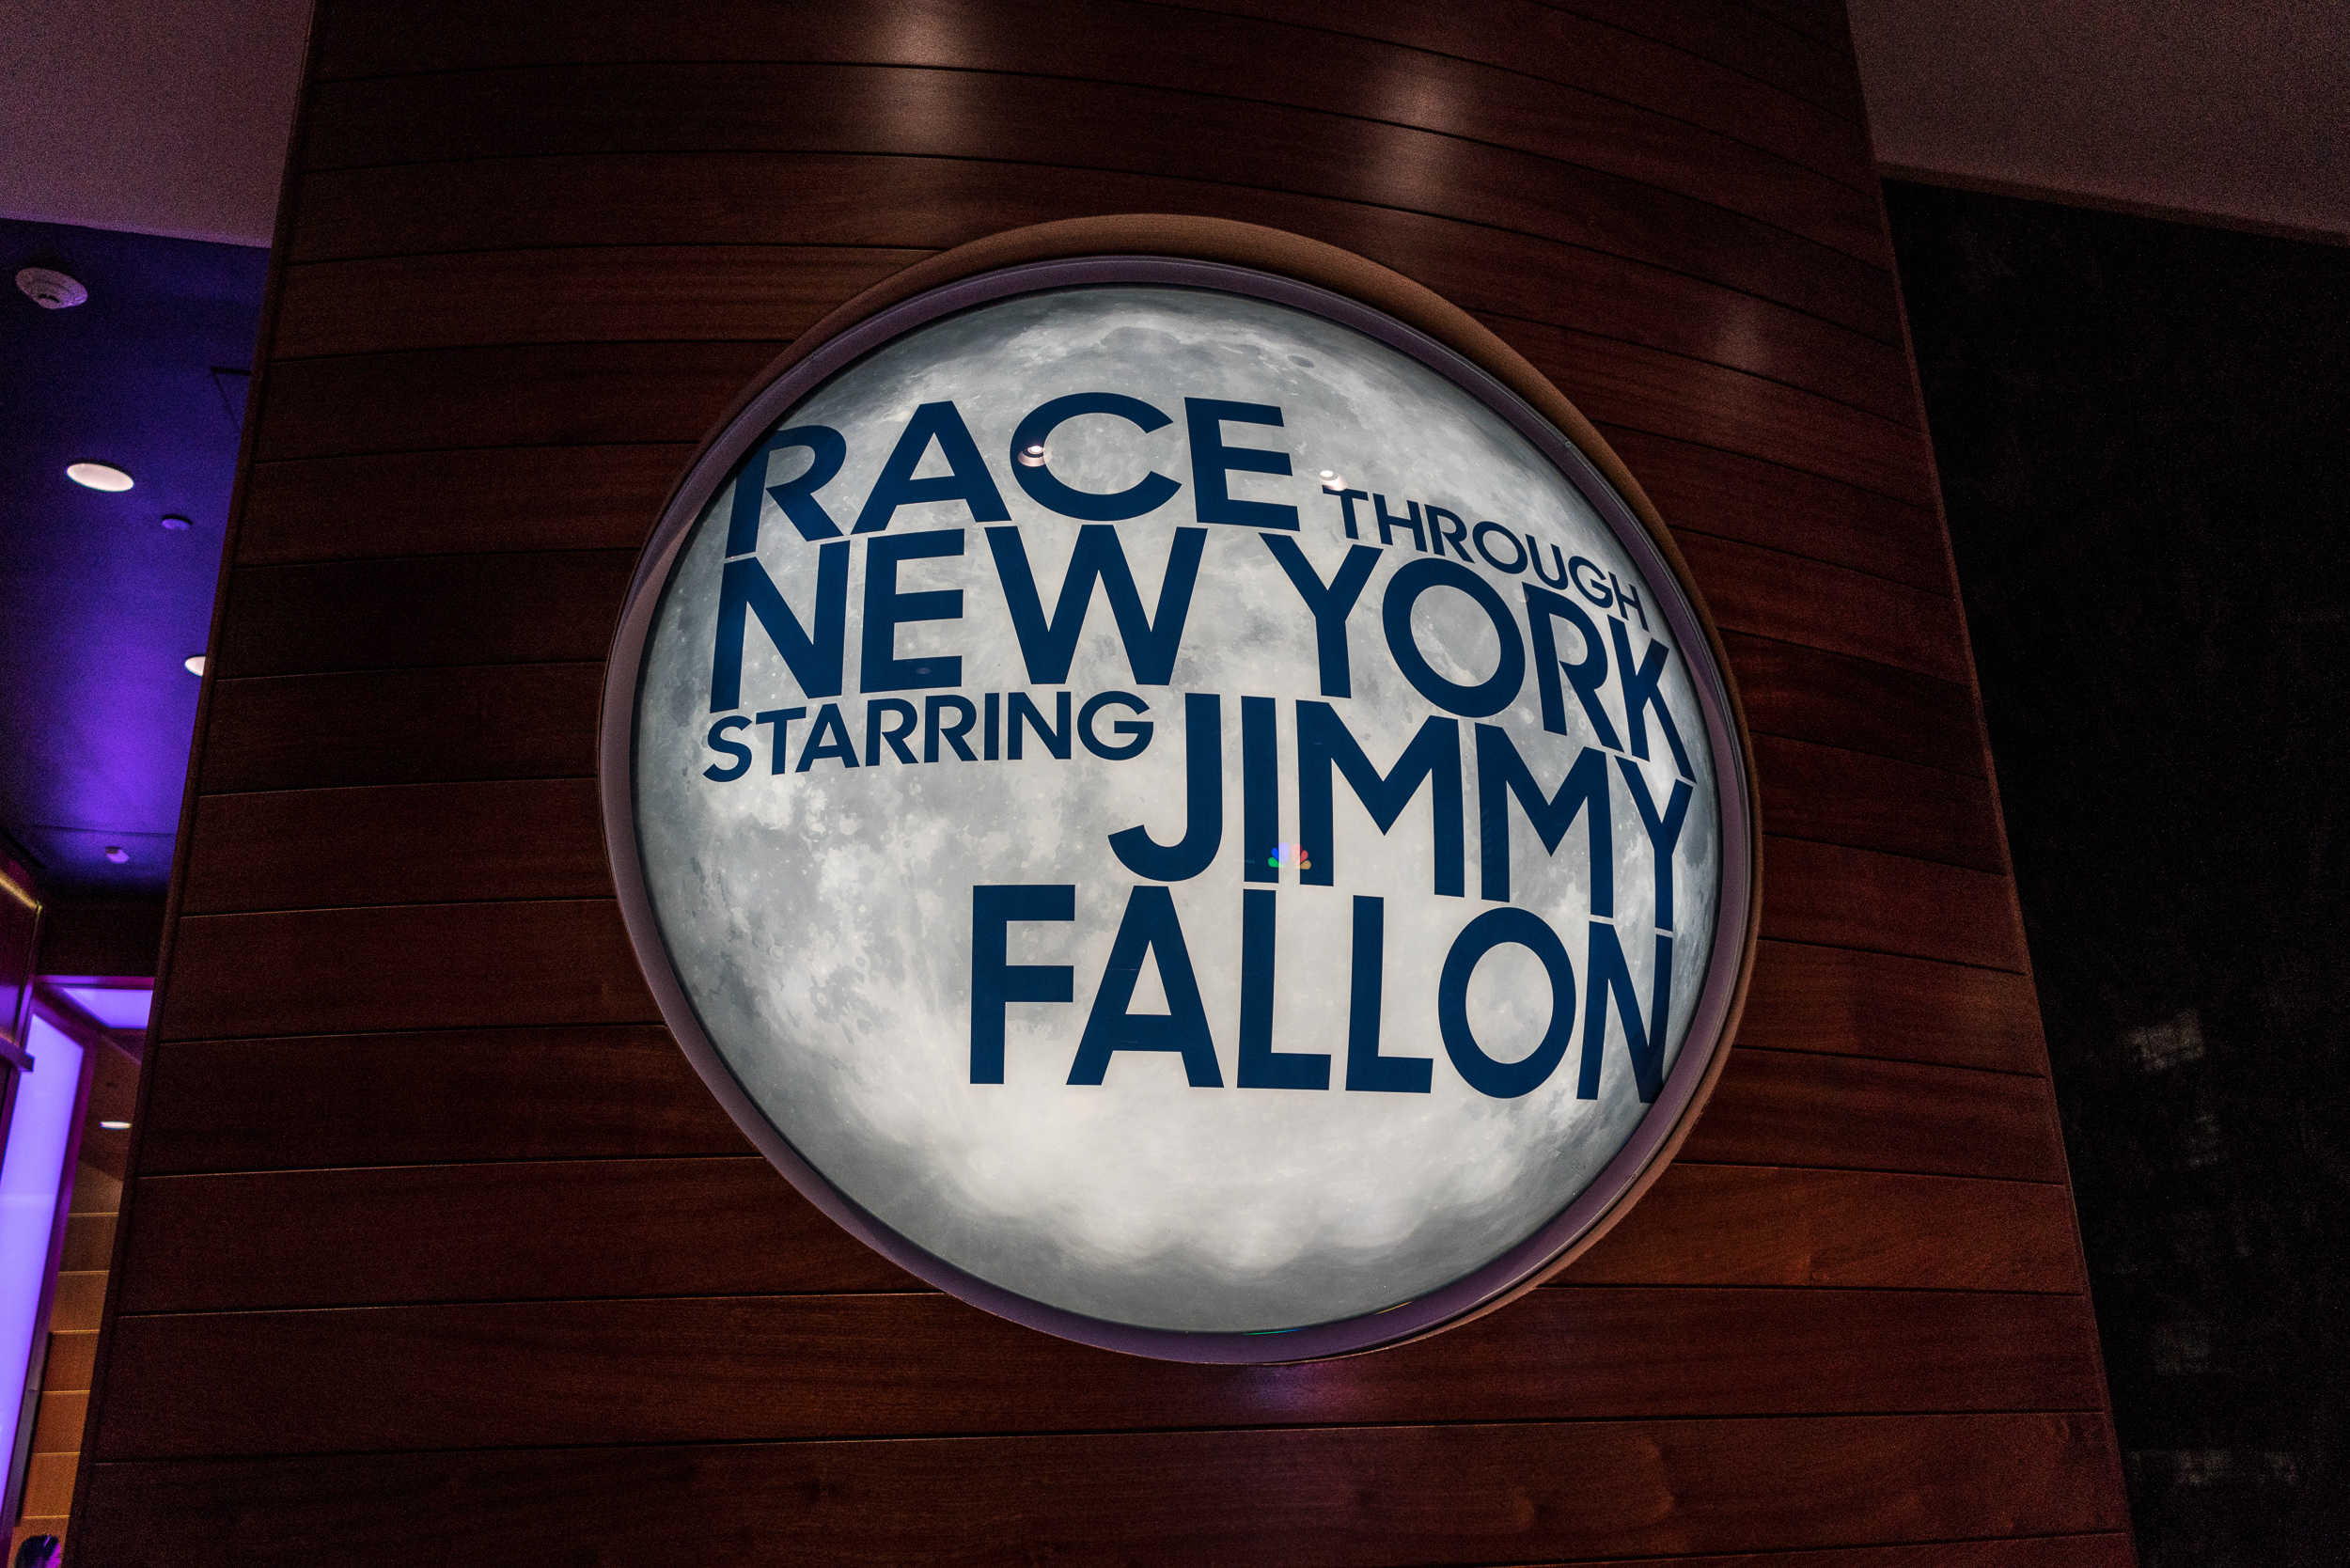 4 biggest takeaways from Race through New York Starring Jimmy Fallon